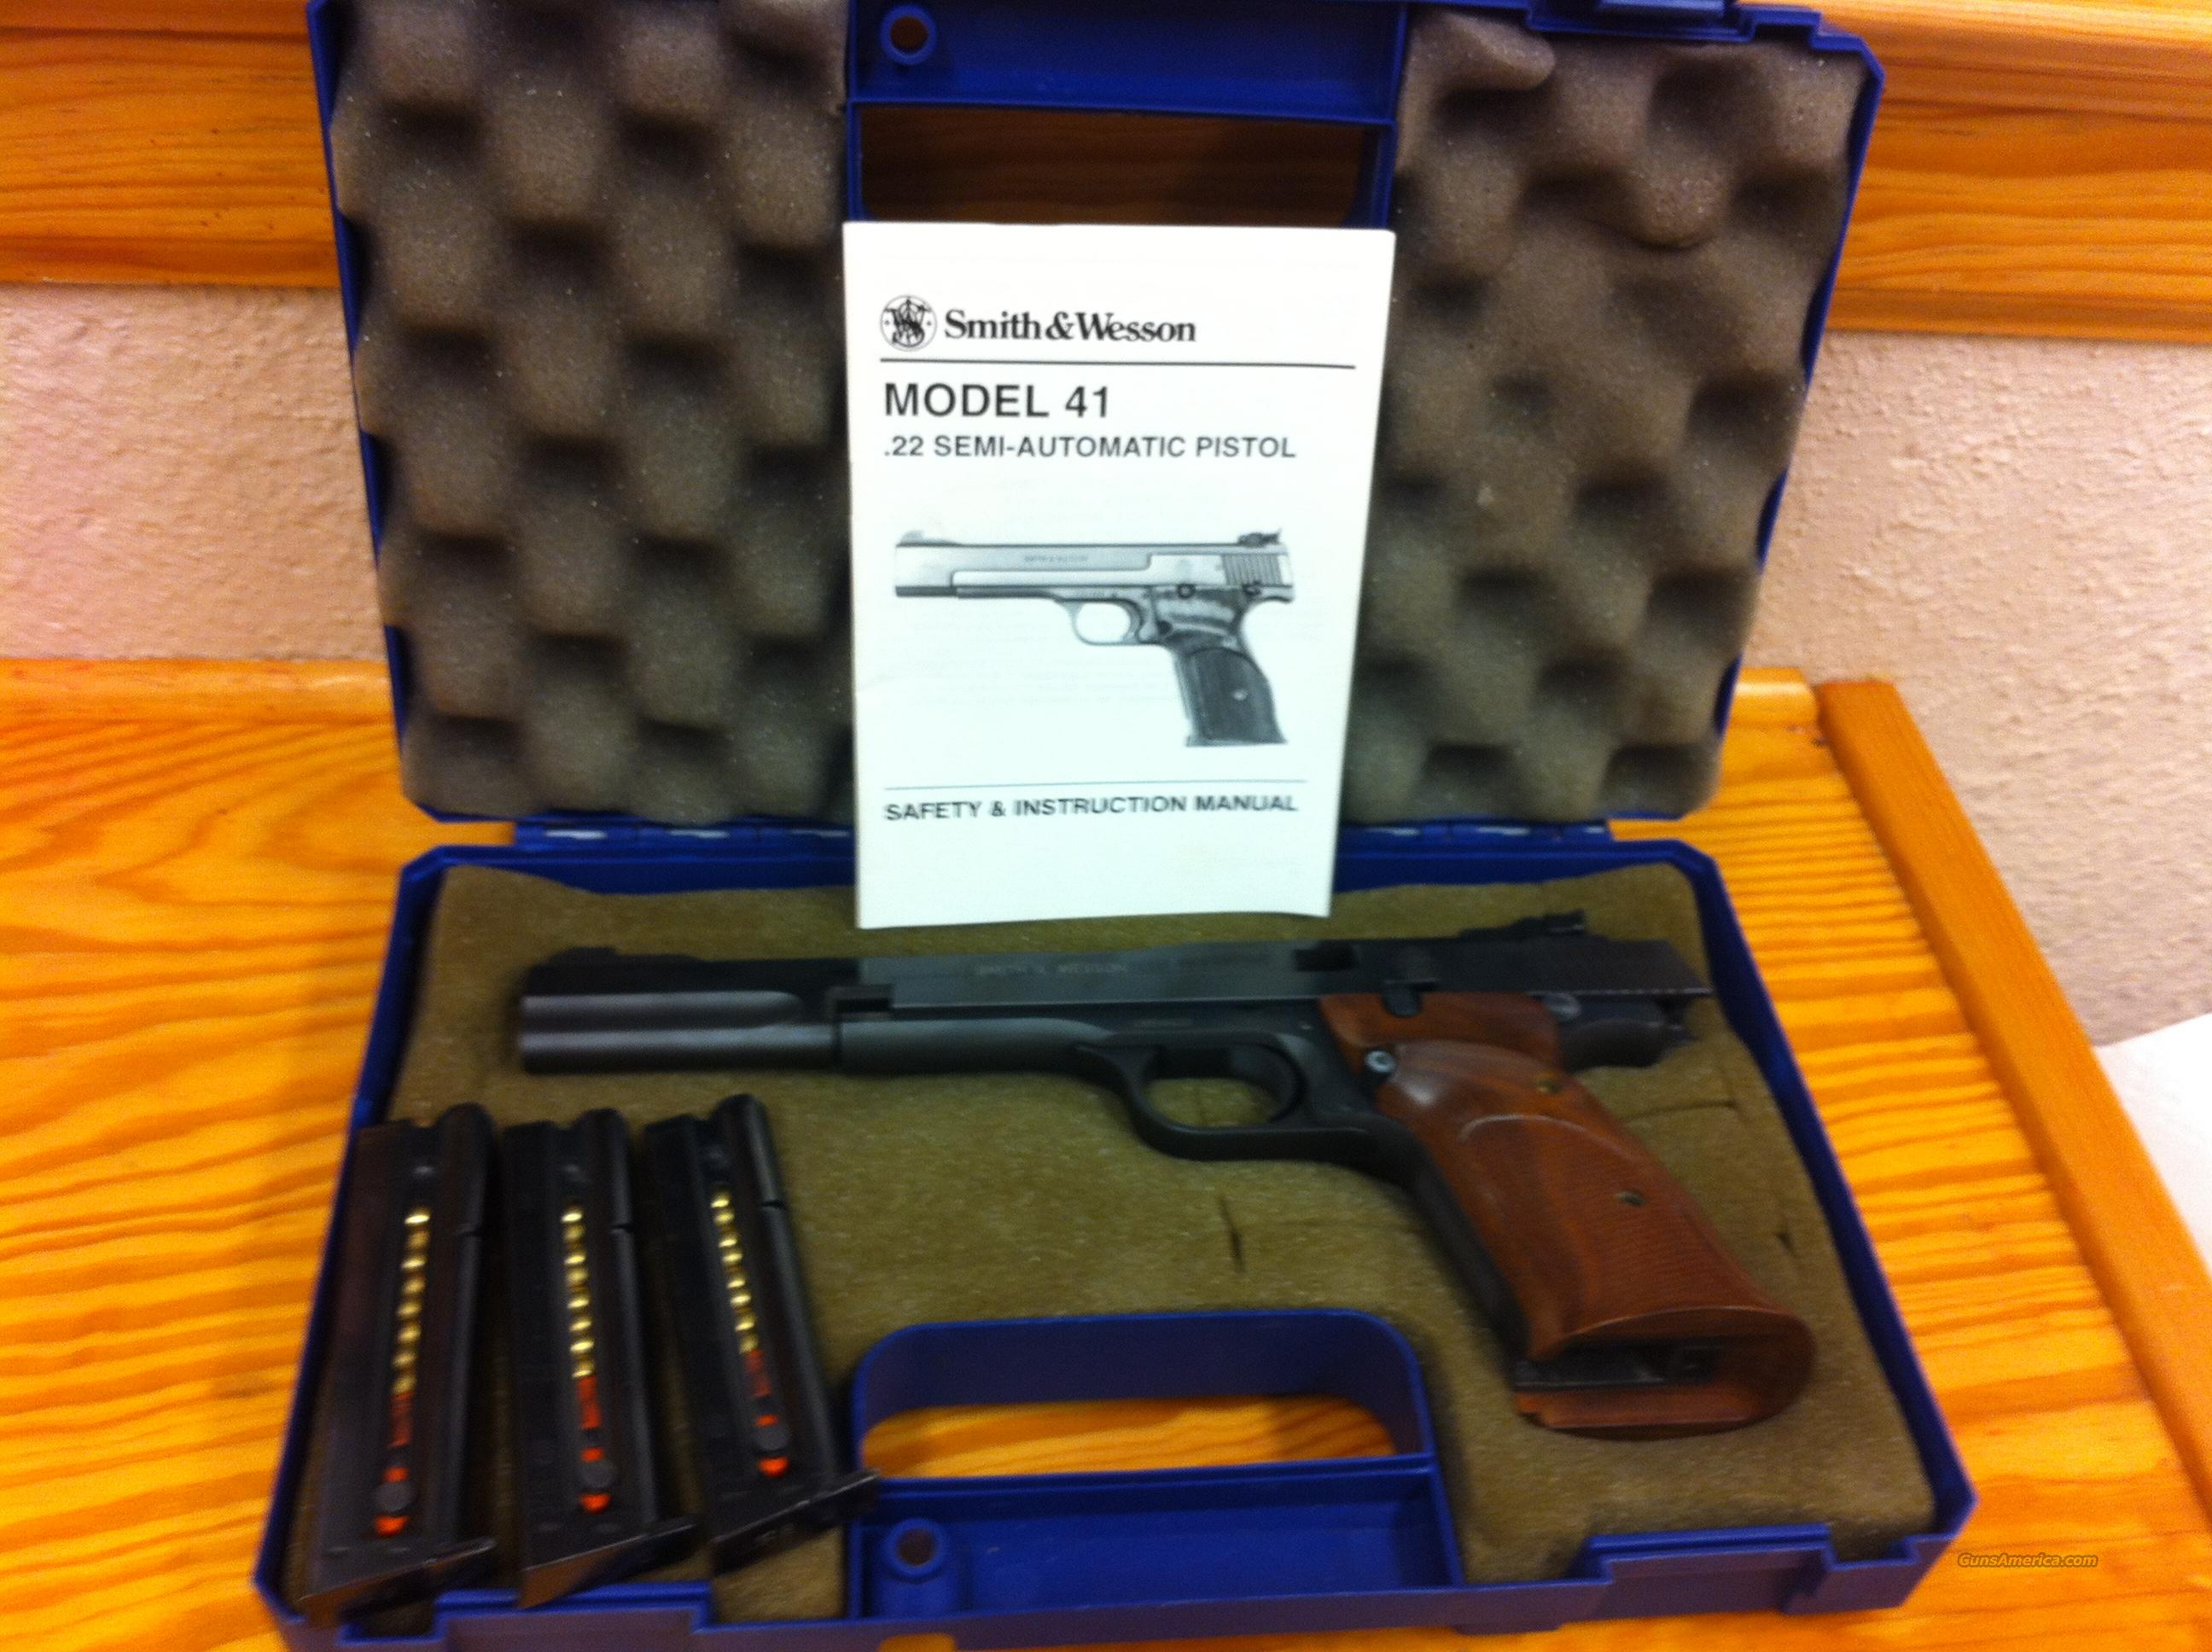 Smith and Wesson Model 41 target pistol  Guns > Pistols > Smith & Wesson Pistols - Autos > .22 Autos